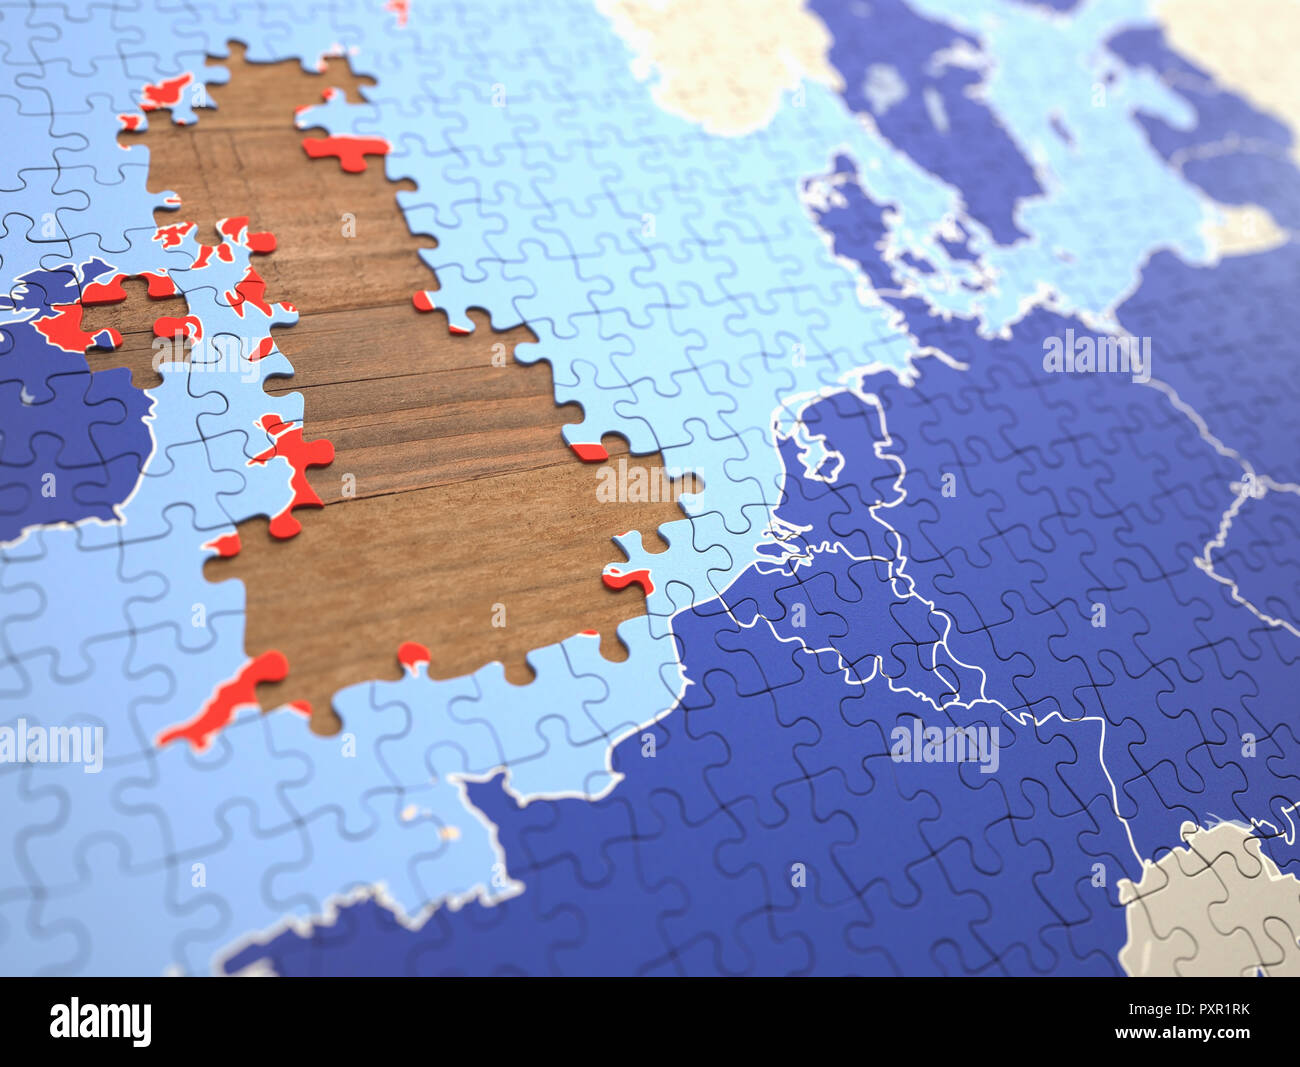 Puzzle with missing pieces from United Kingdom. Concept of the UK leaving the European Union. - Stock Image